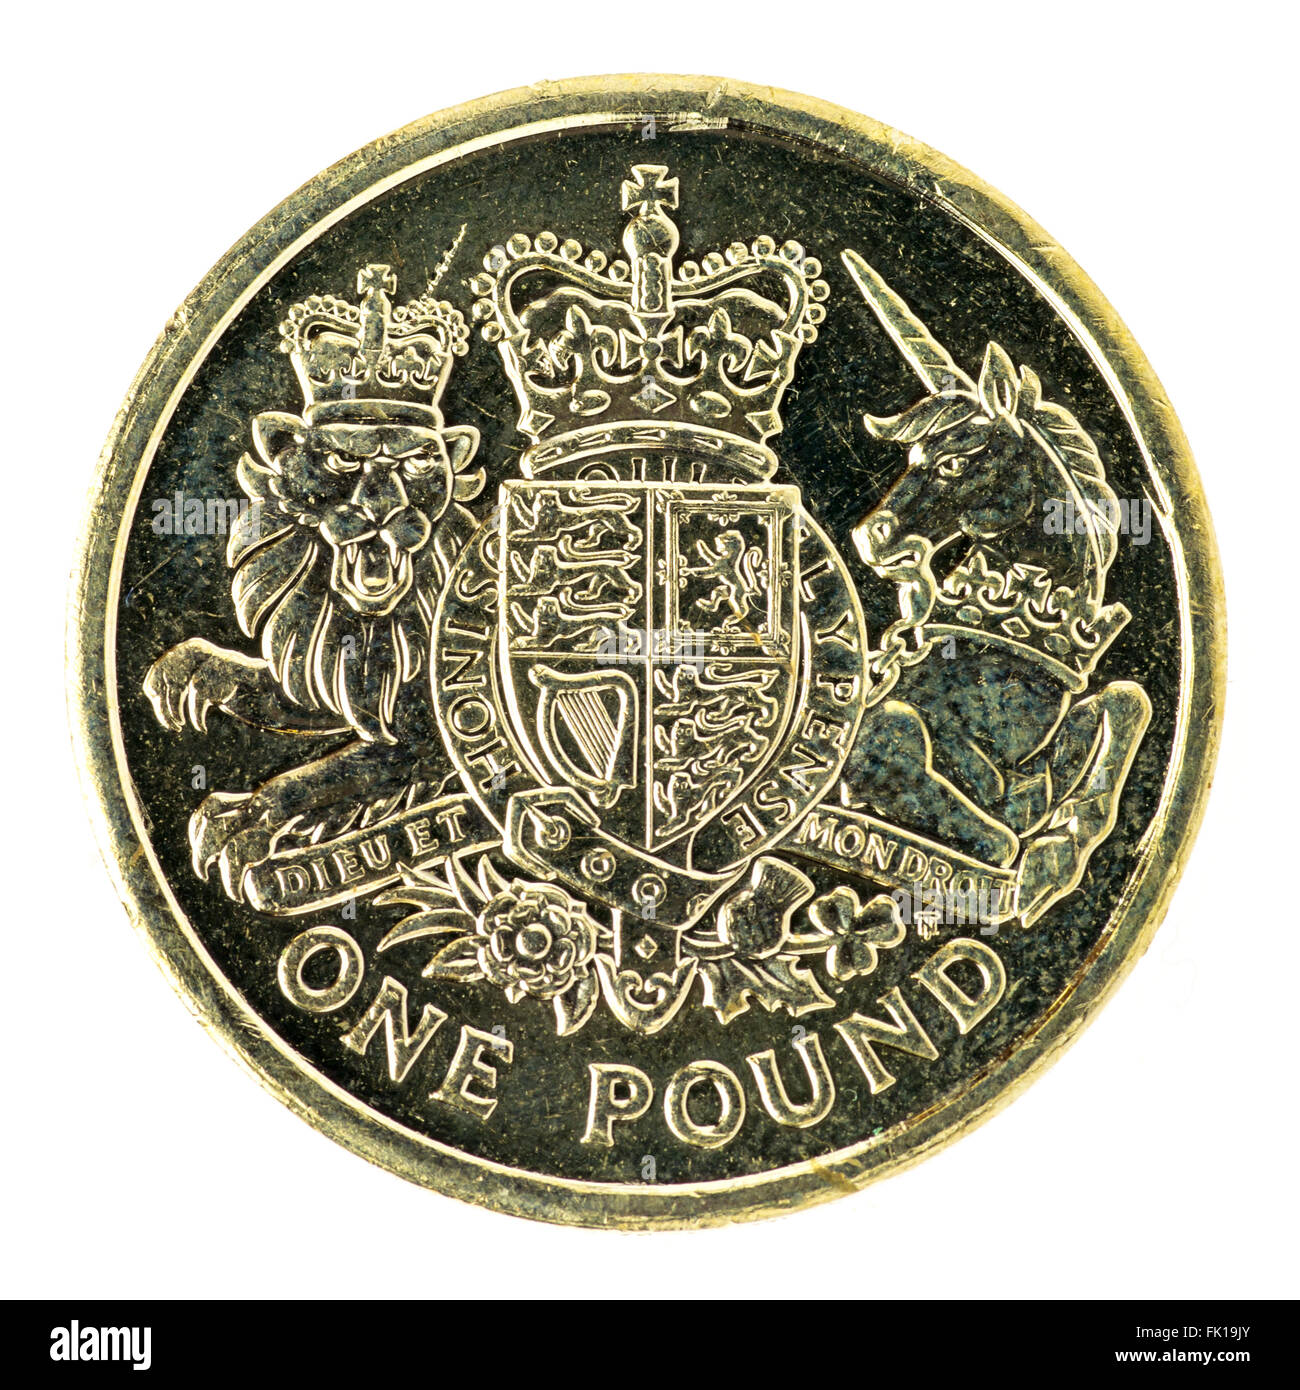 British one pound coin - Stock Image